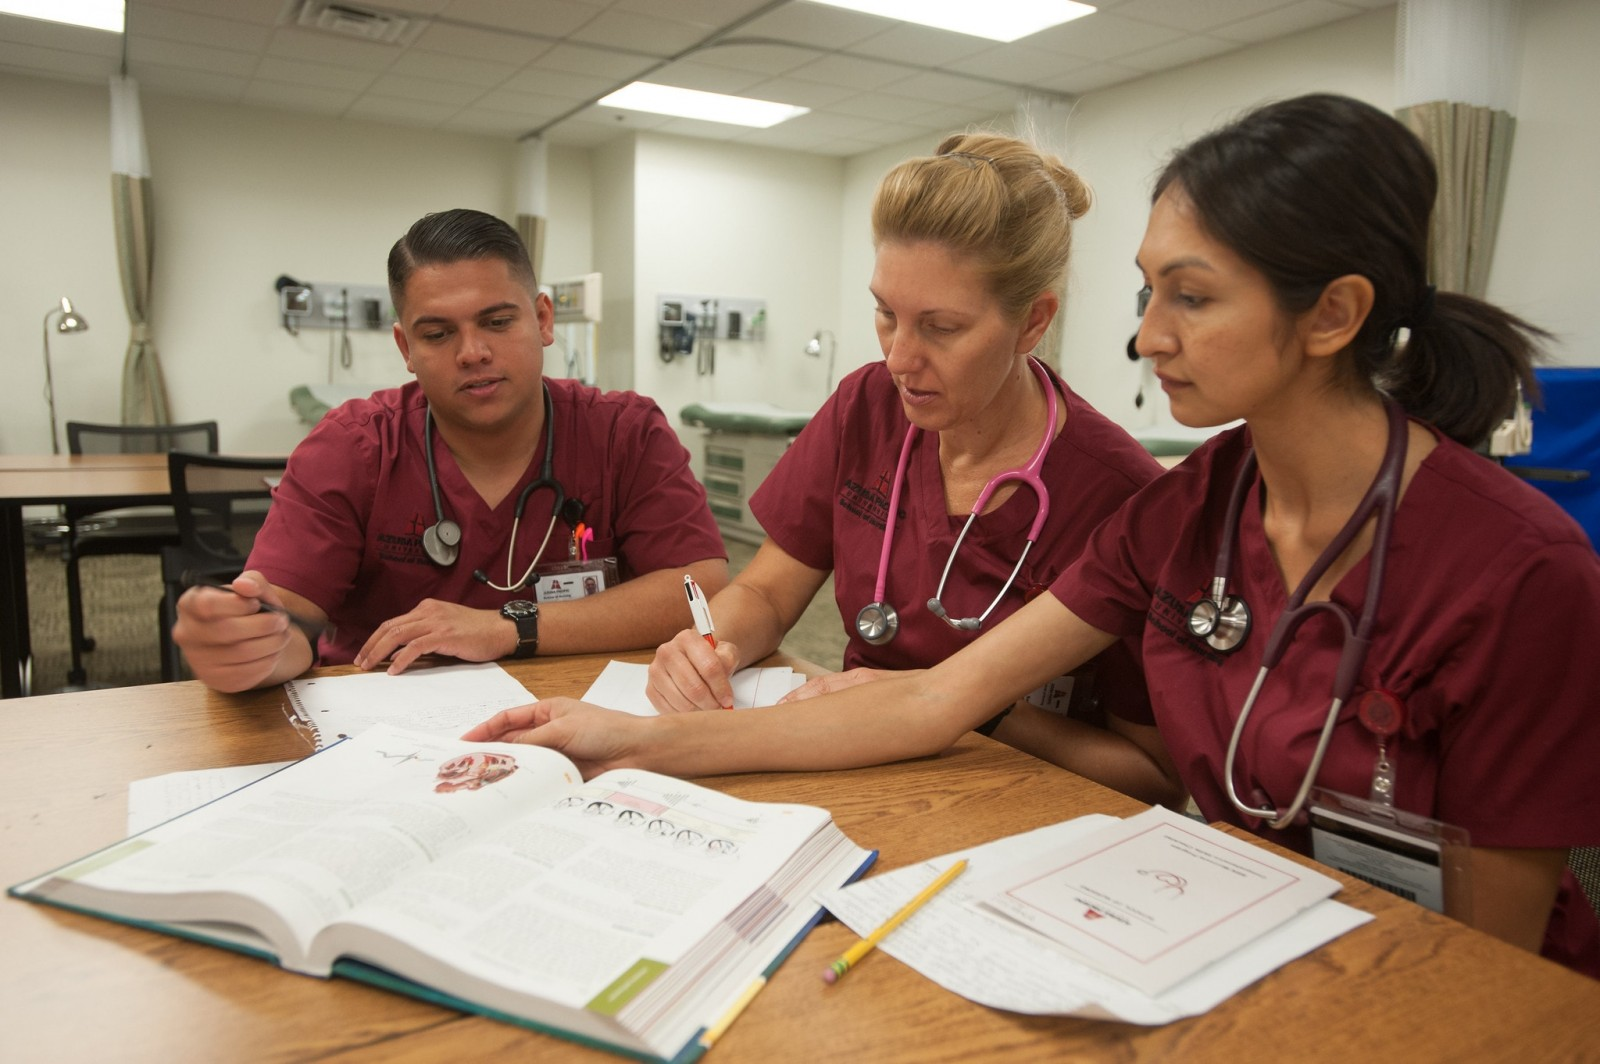 APU's traditional Bachelor of Science in Nursing (BSN) program is designed for recent high school graduates. Nursing students receive professional accreditation and clinical practice for their freshman through senior years, and are eligible for public health certification following graduation.